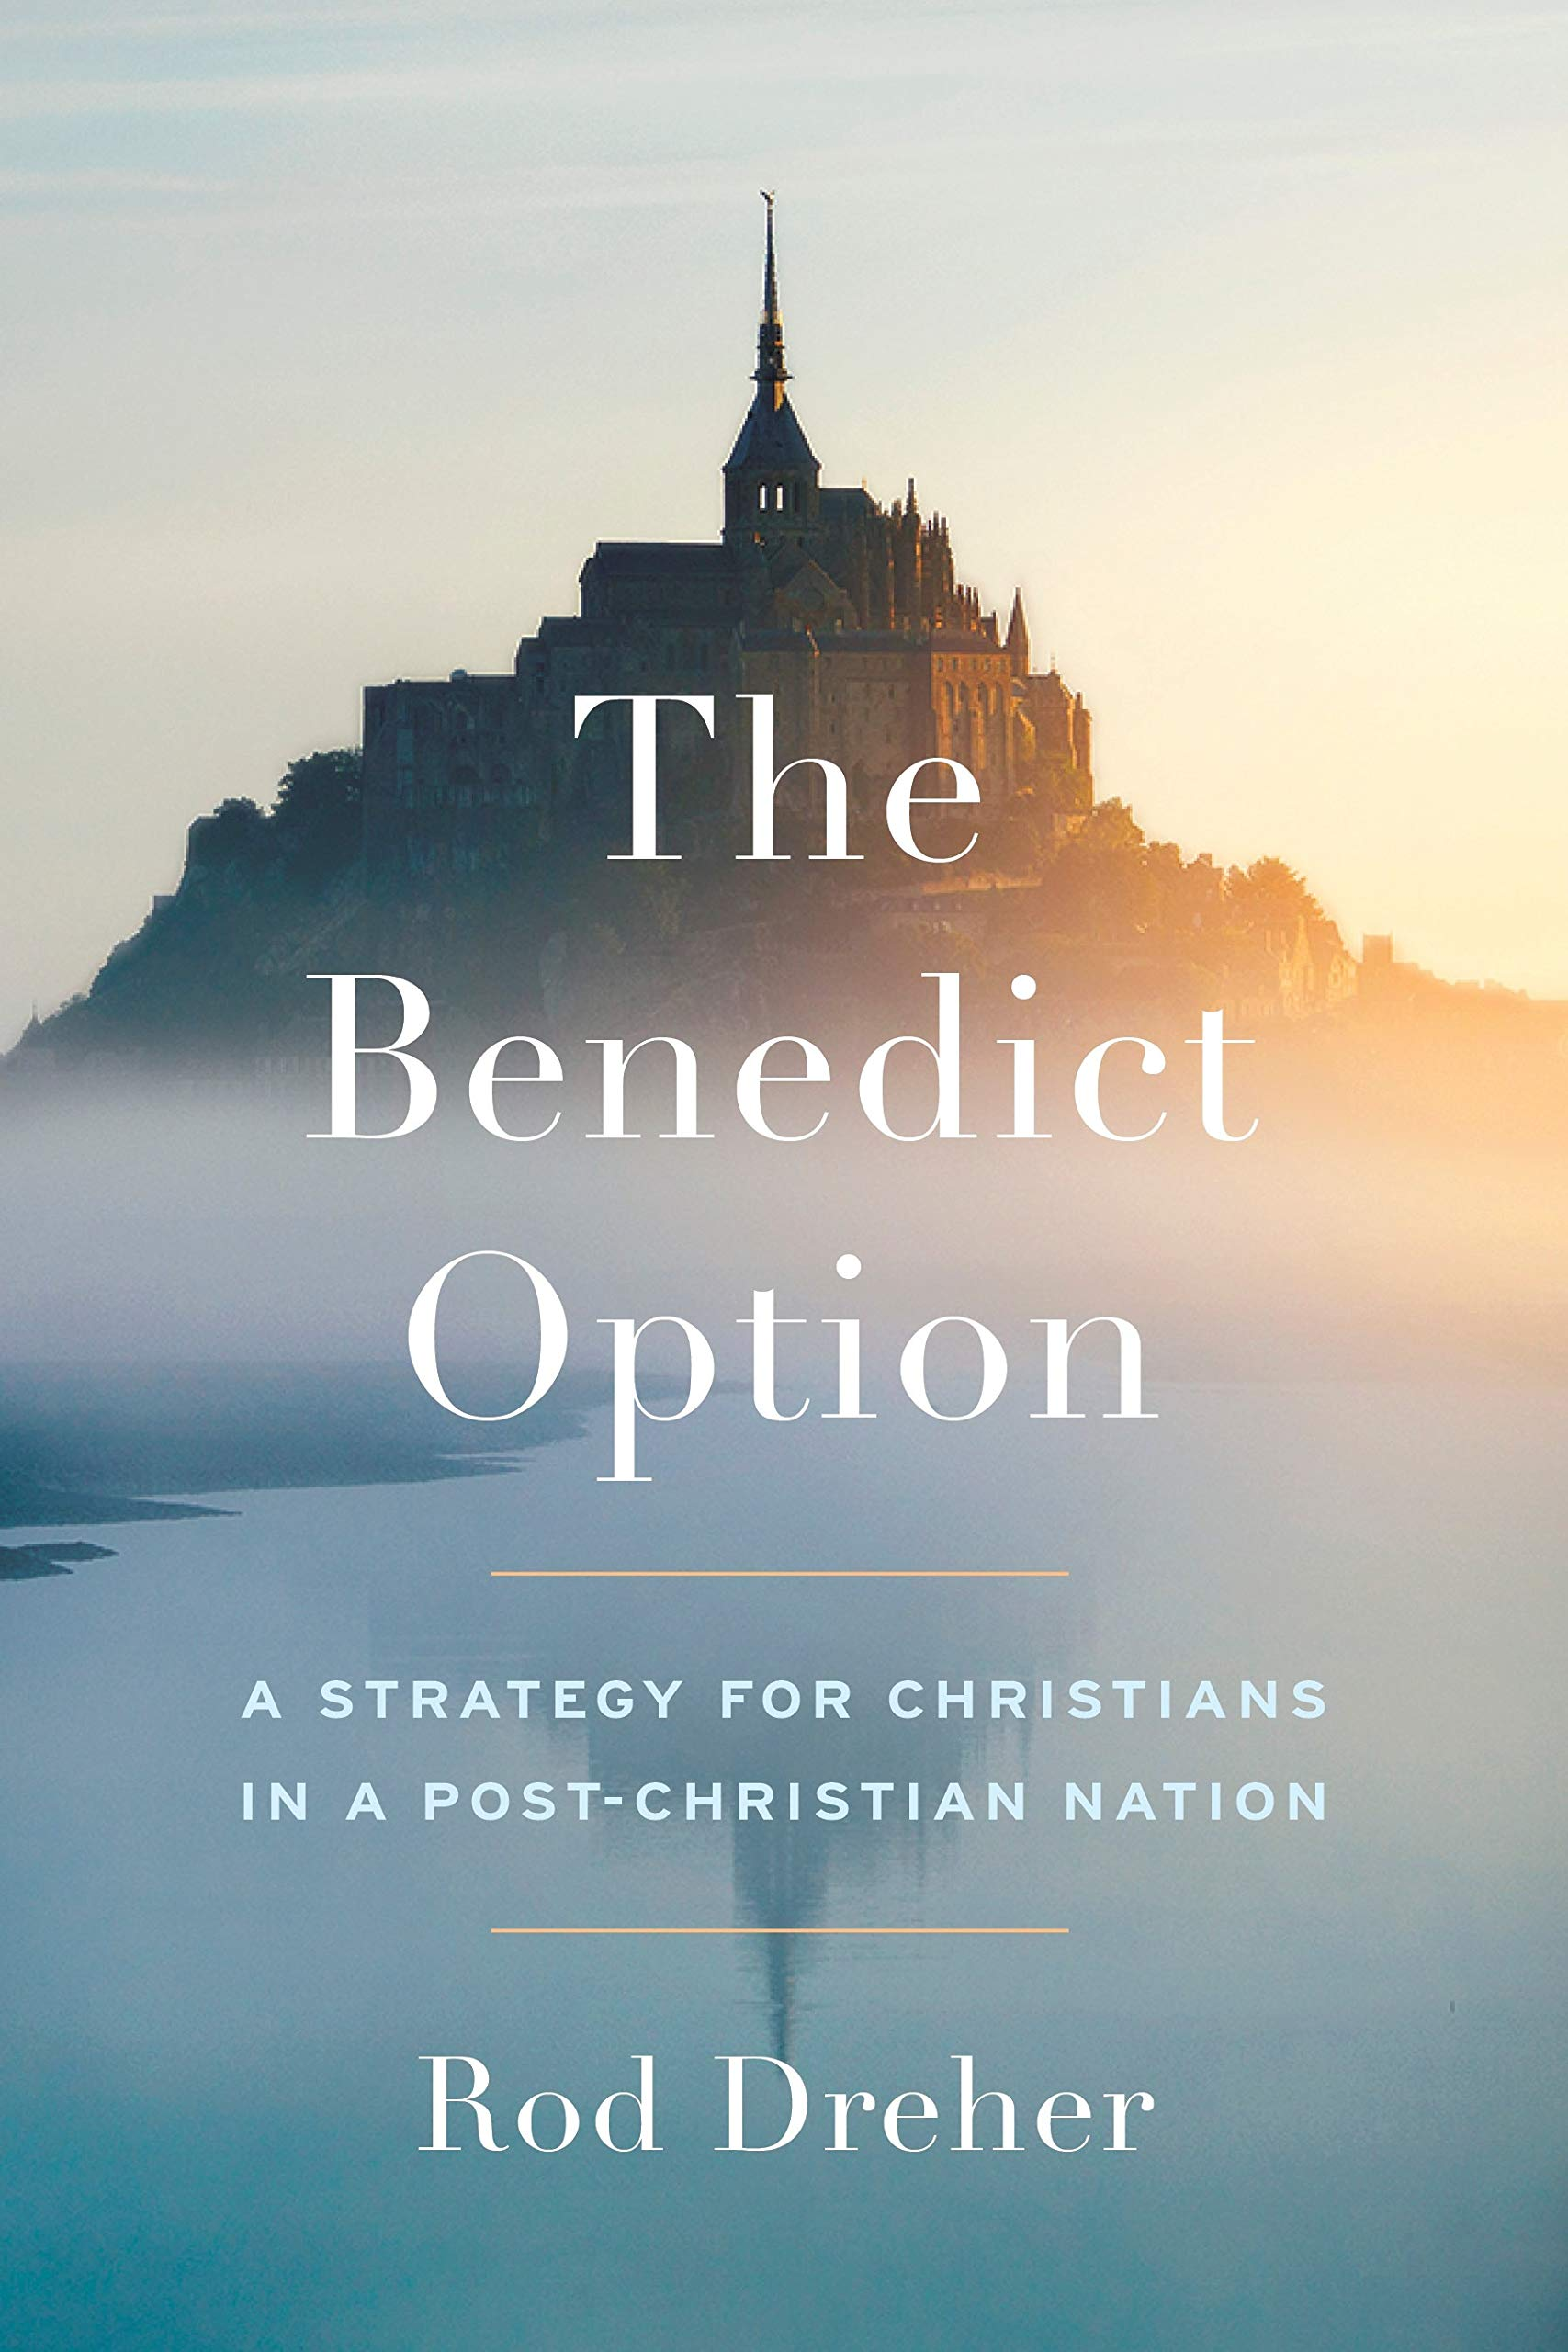 Rod Dreher, The benedict Option